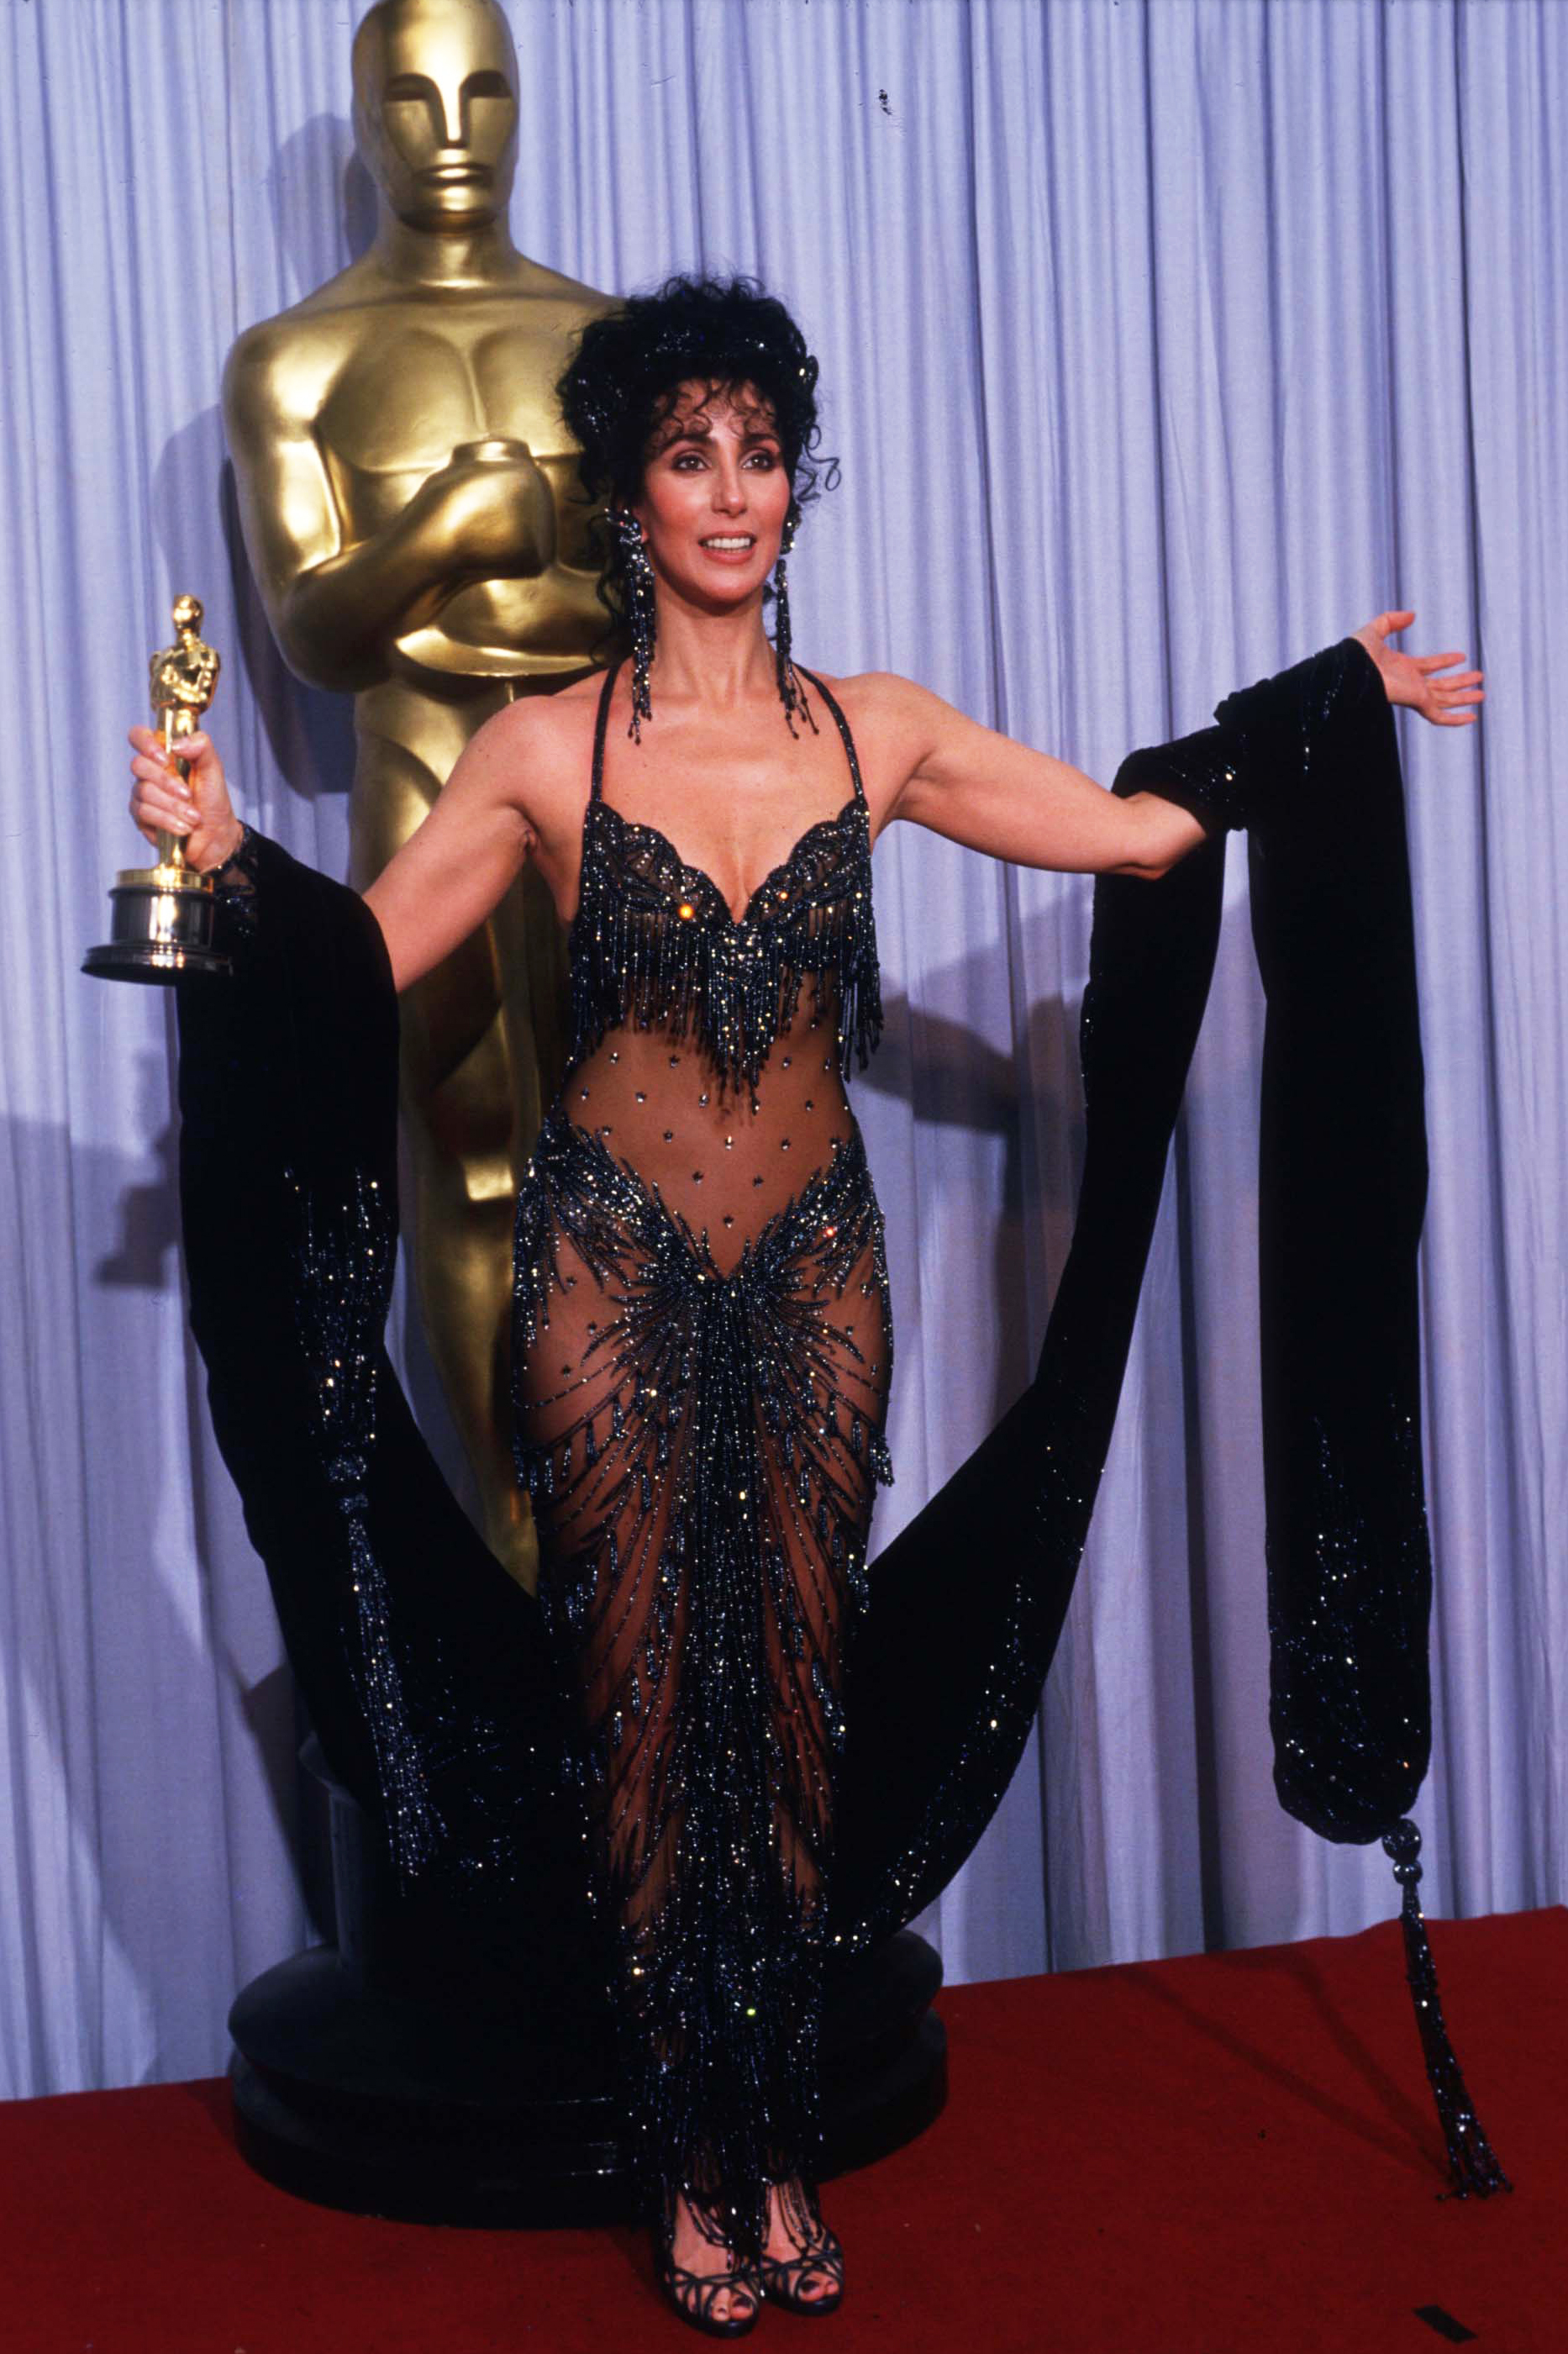 Cher holds her Oscar for Best Actress in a Leading Role Oscar for Moonstruck in Los Angeles on April 11, 1988.